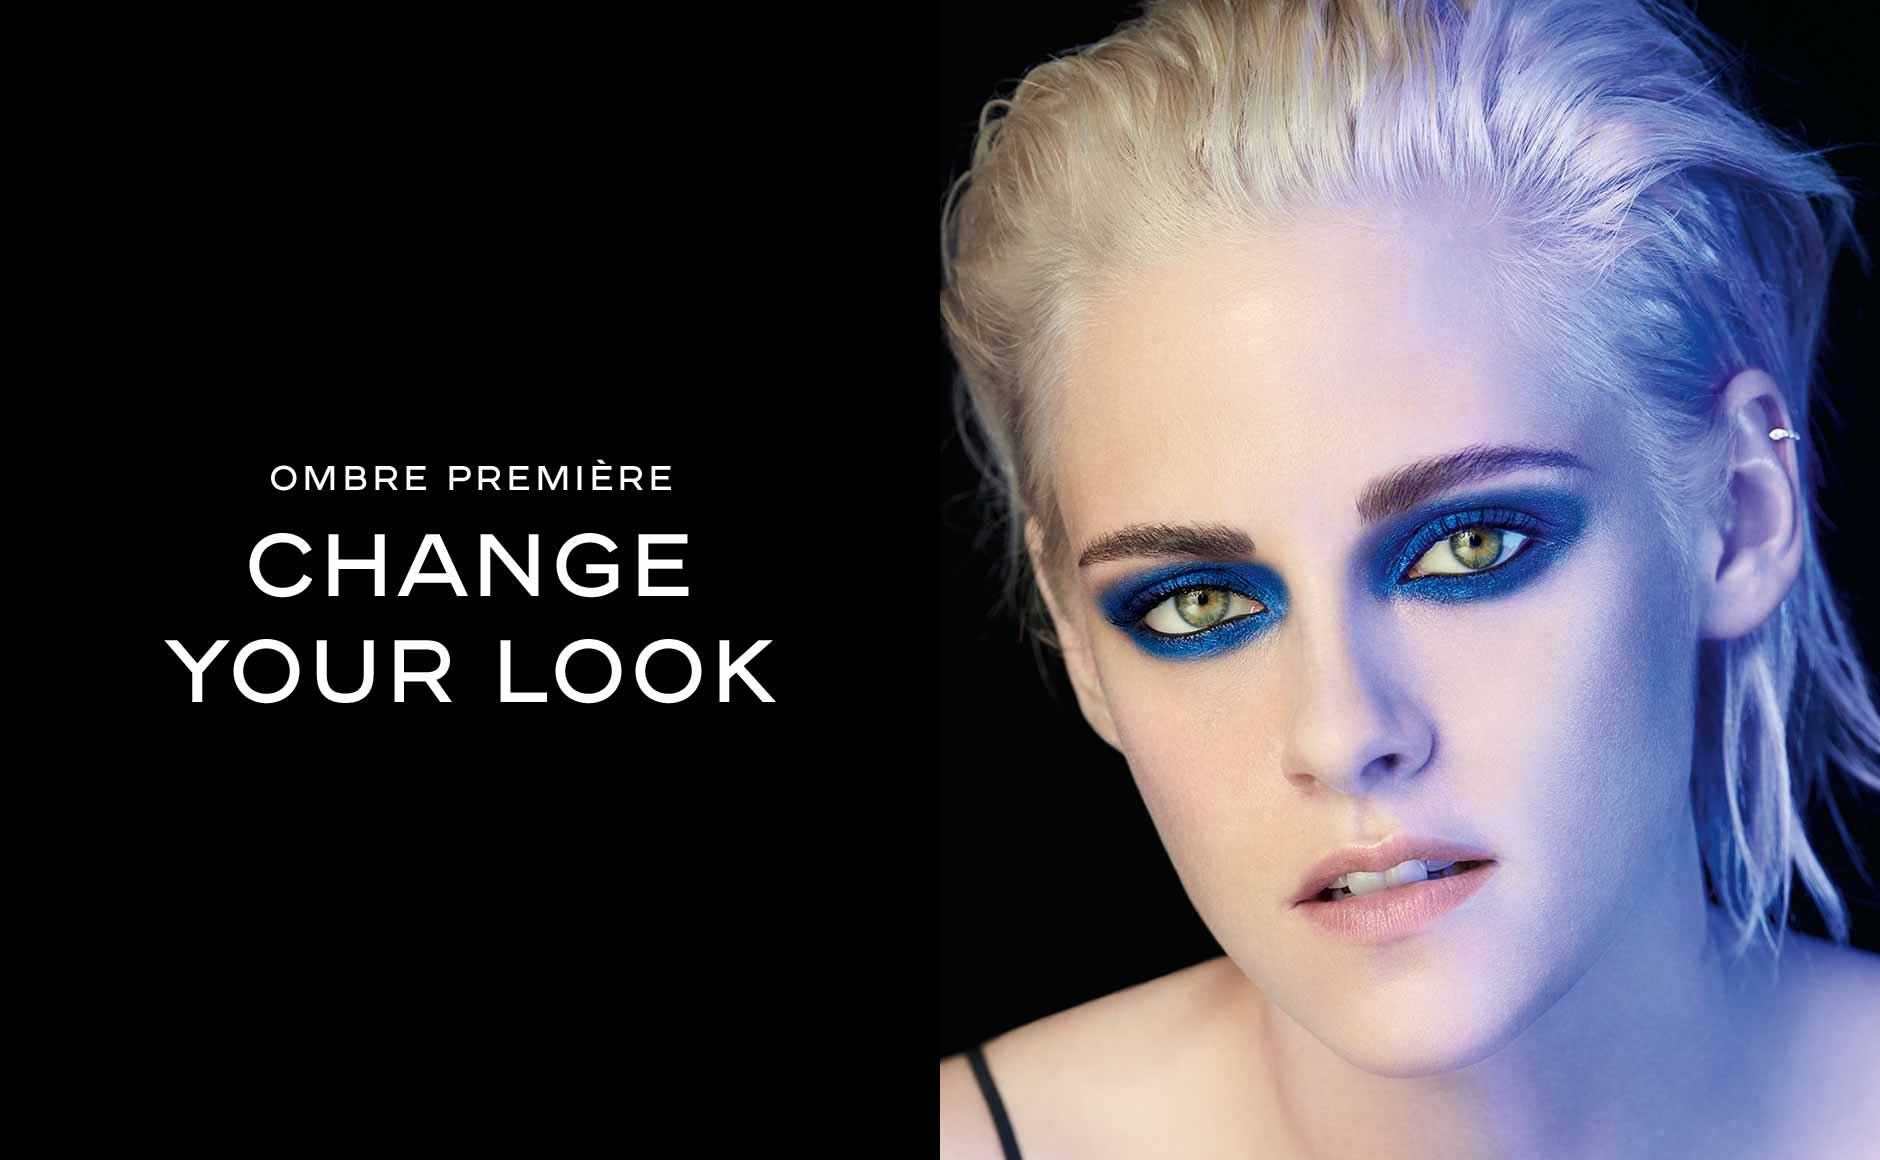 Ombre Premiere - Change your look